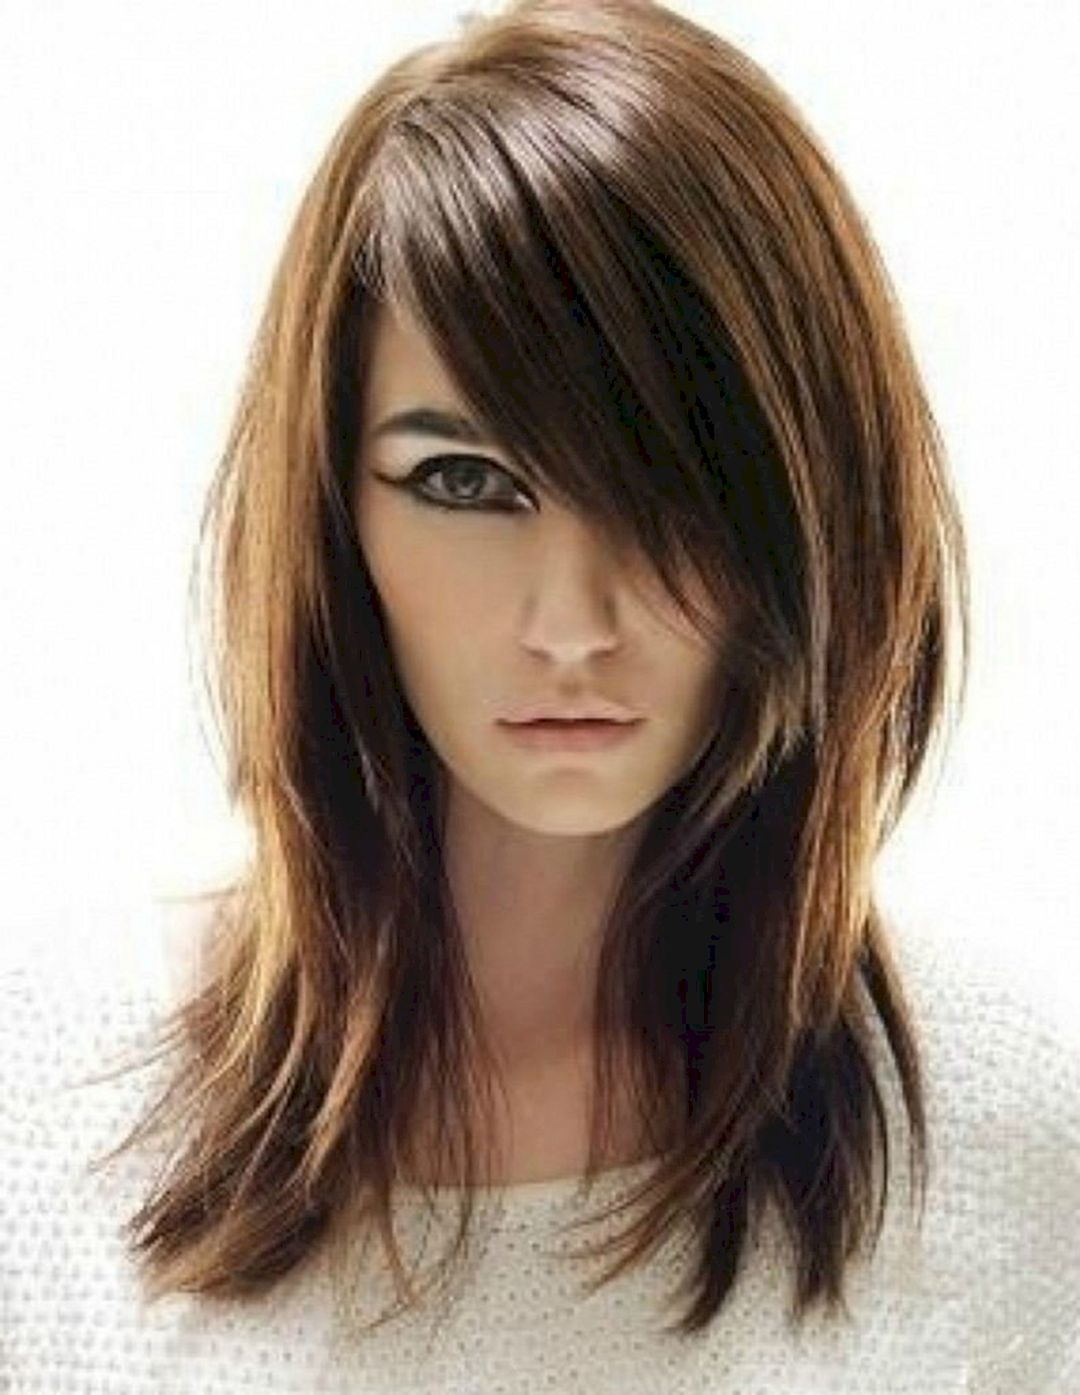 20 Beautiful Long Hairstyle For Women Style 2020 Haircuts For Long Hair With Layers Medium Length Hair Styles Long Thin Hair